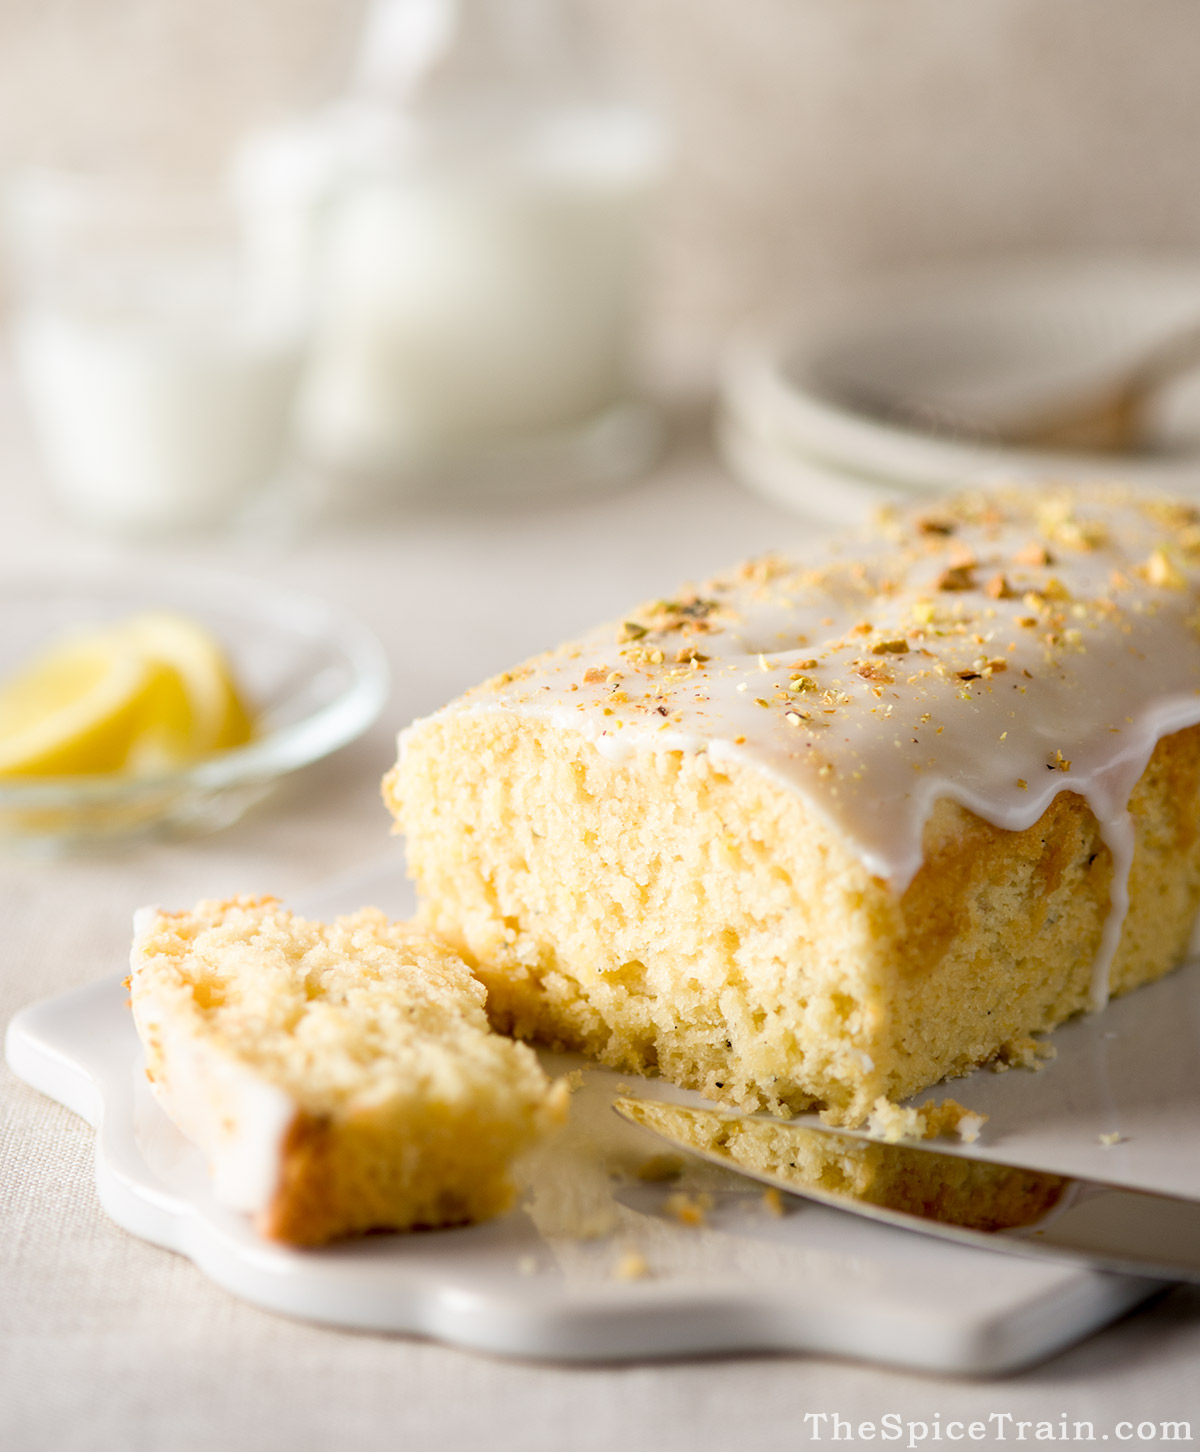 A lemon cardamom loaf cake with the first slice being cut on a ceramic cutting board.